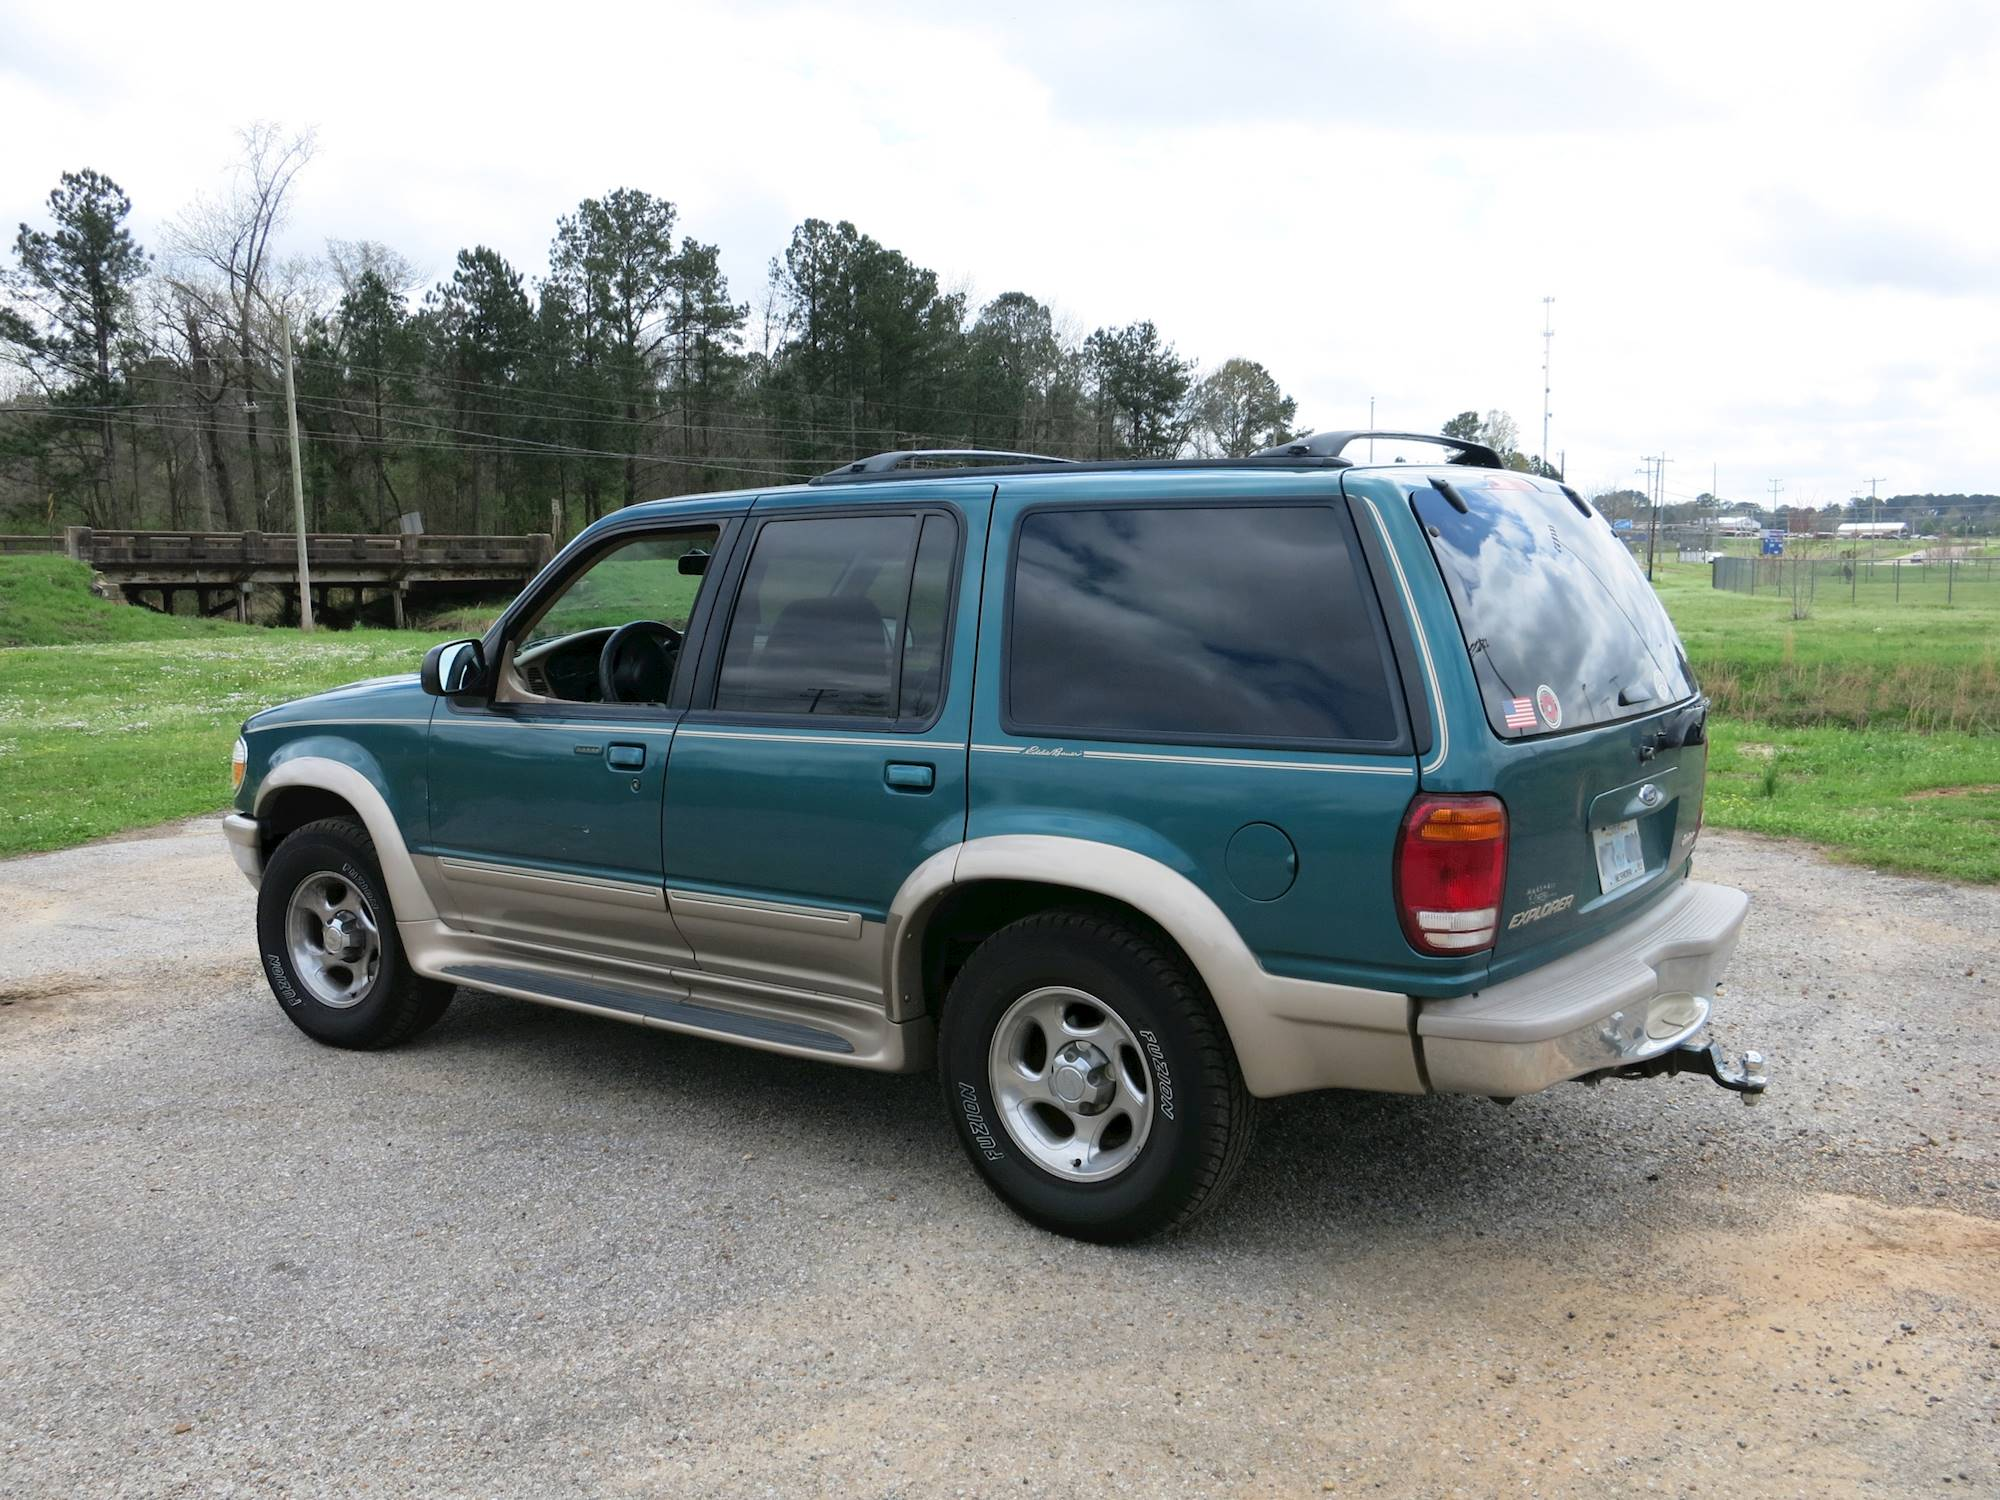 File:1998 Ford Explorer Eddie Bauer Edition - 16310509024 .